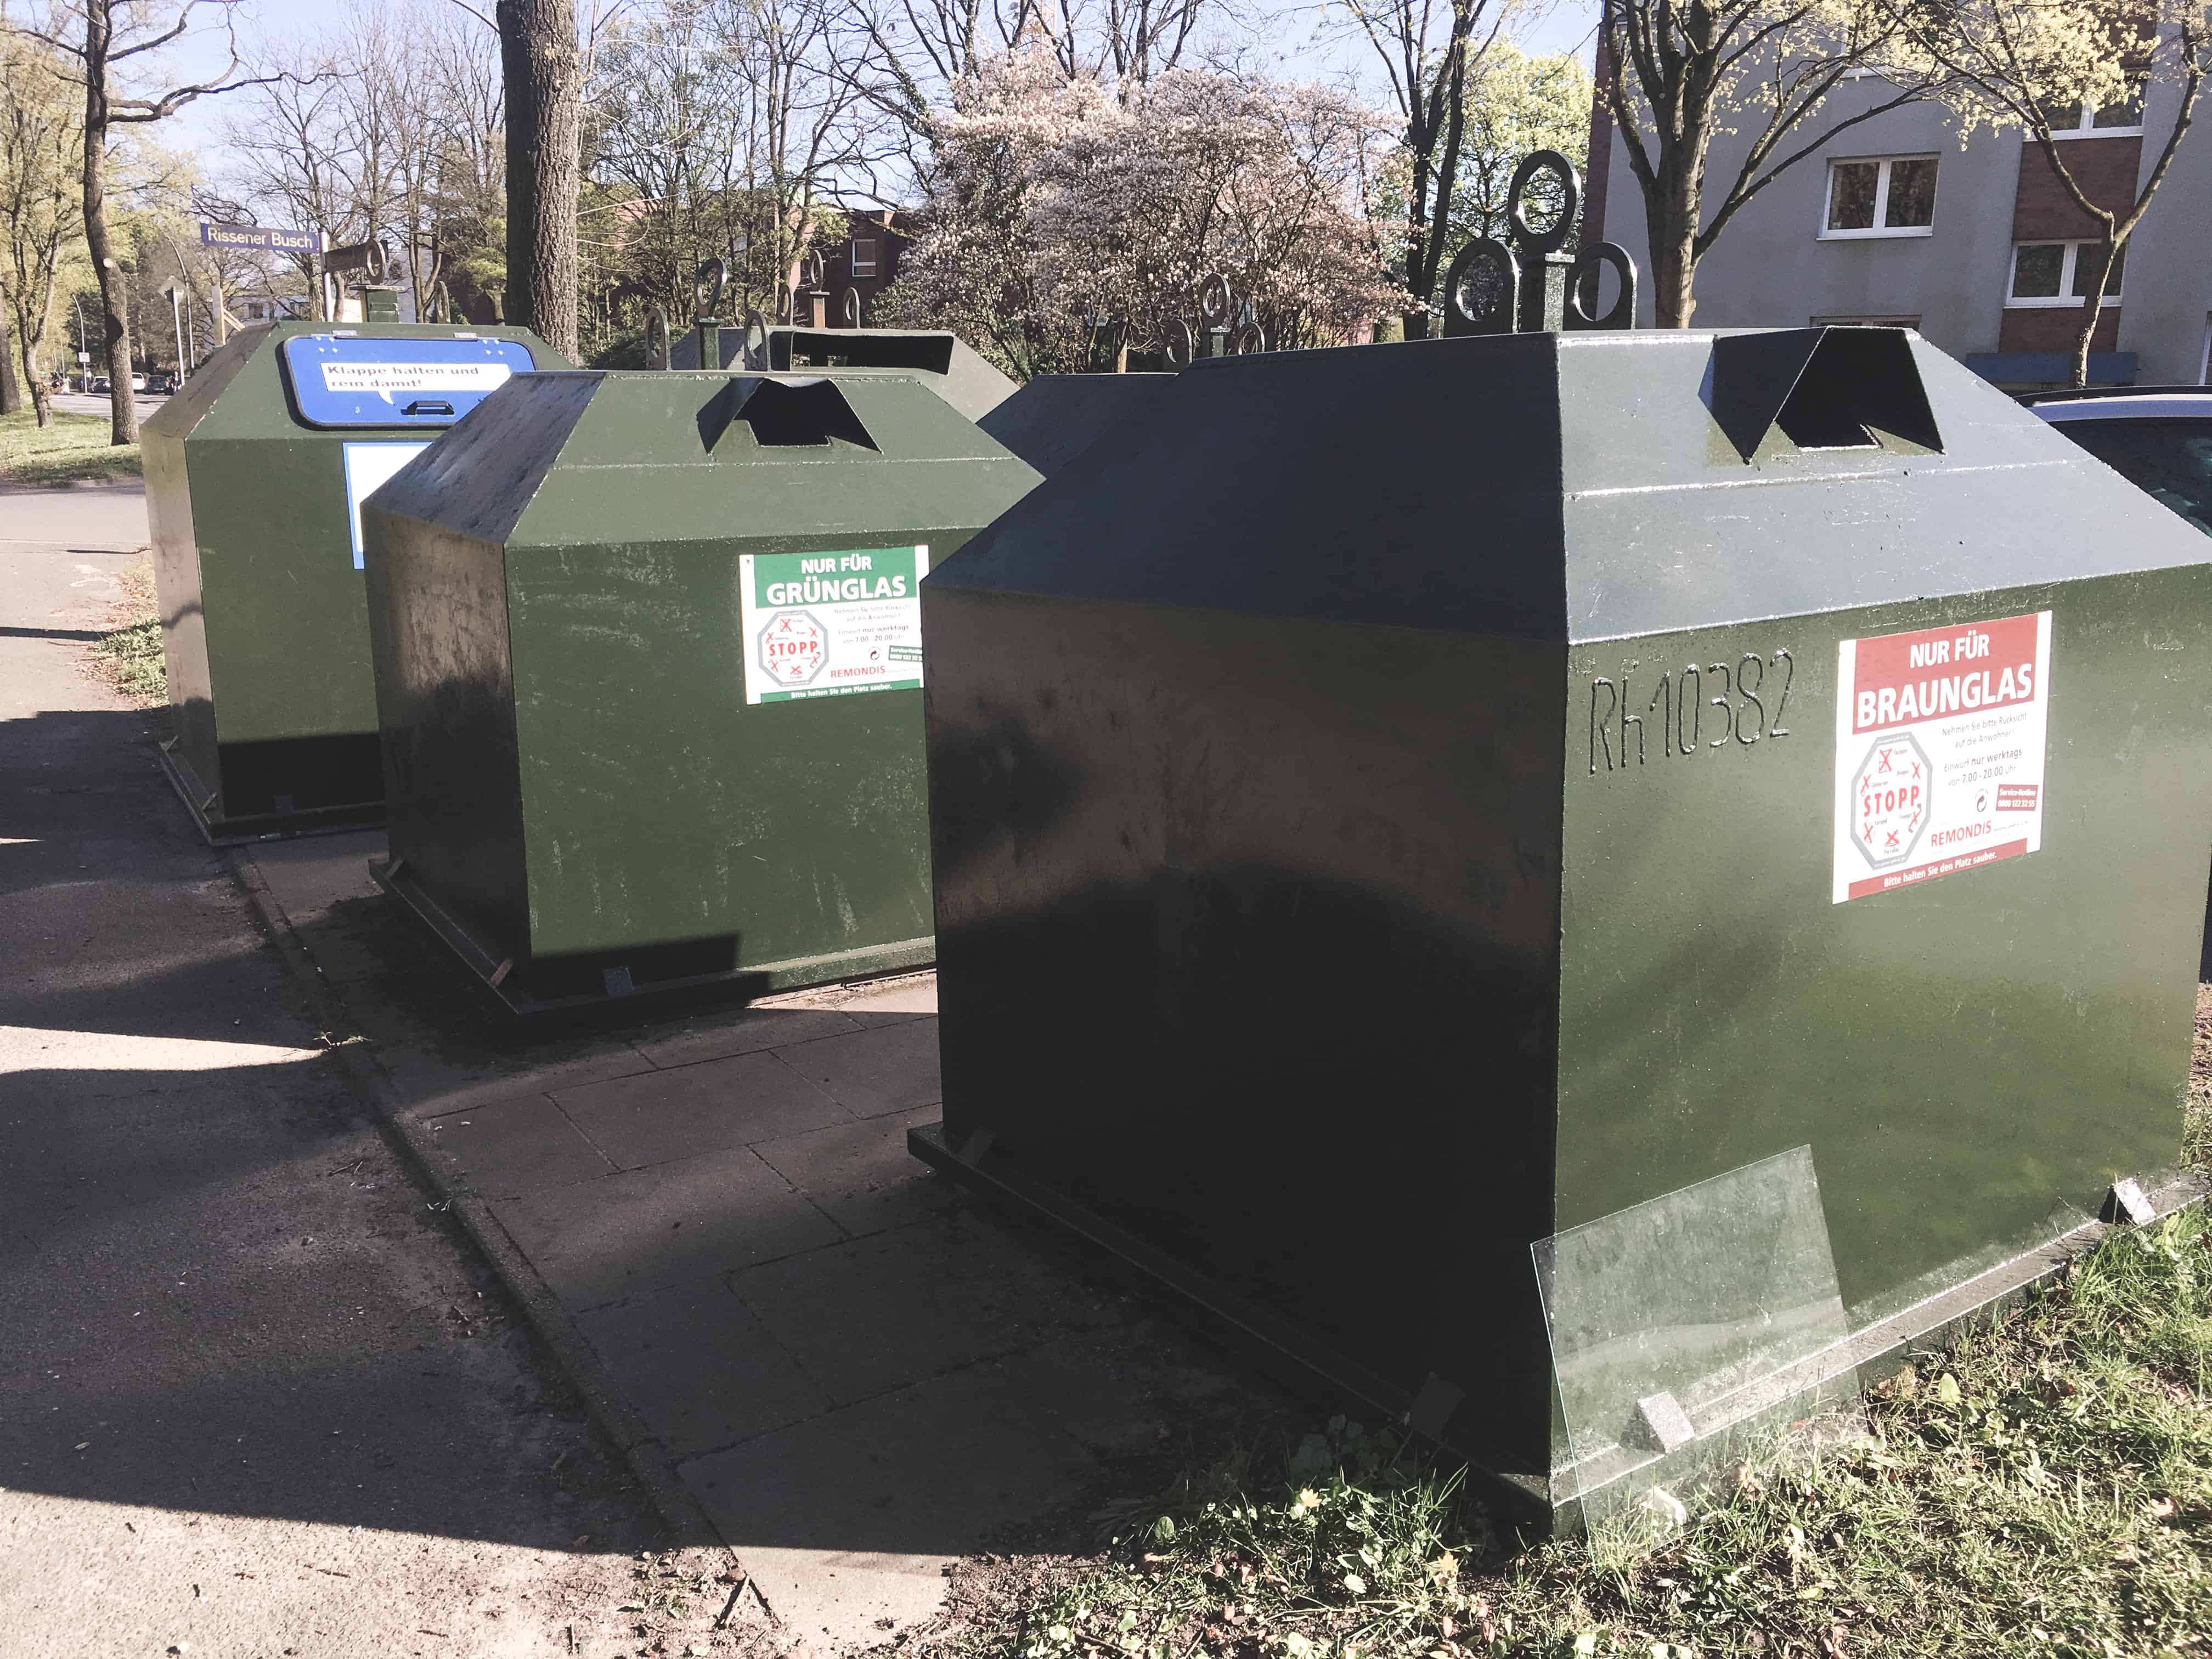 Germans are into separating EVERYTHING when it comes to recycling - one thing that surprised me about Germany!